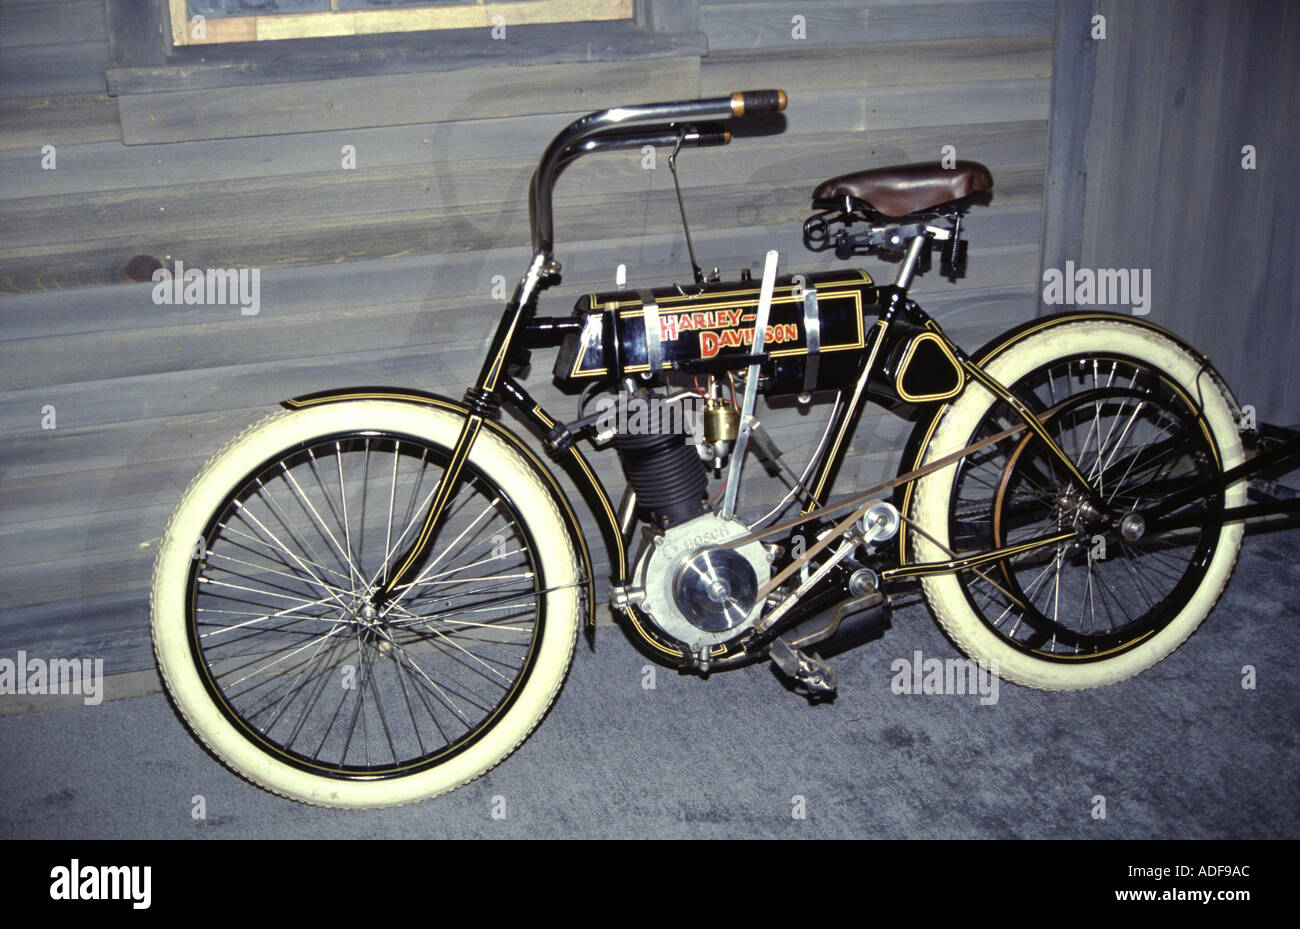 First Harley Davidson: The First Harley Davidson Which Was Built In A Shed In